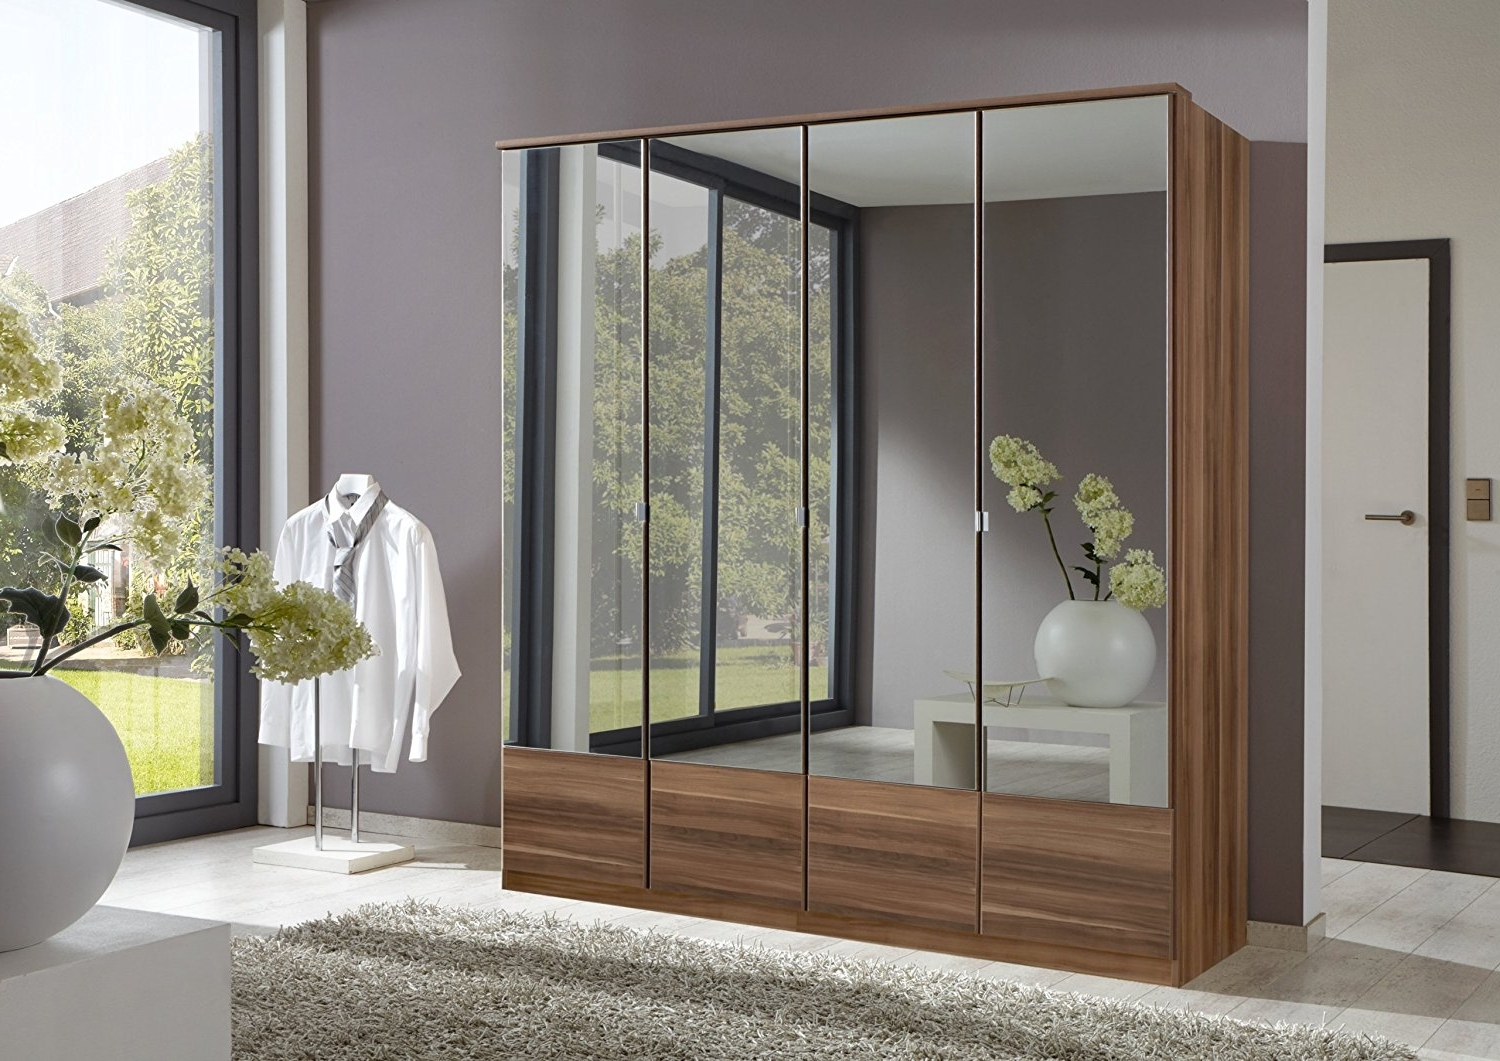 3 Door Mirrored Wardrobes With Regard To Well Known Imago 4 Door Mirrored Wardrobe: Amazon.co (View 4 of 15)